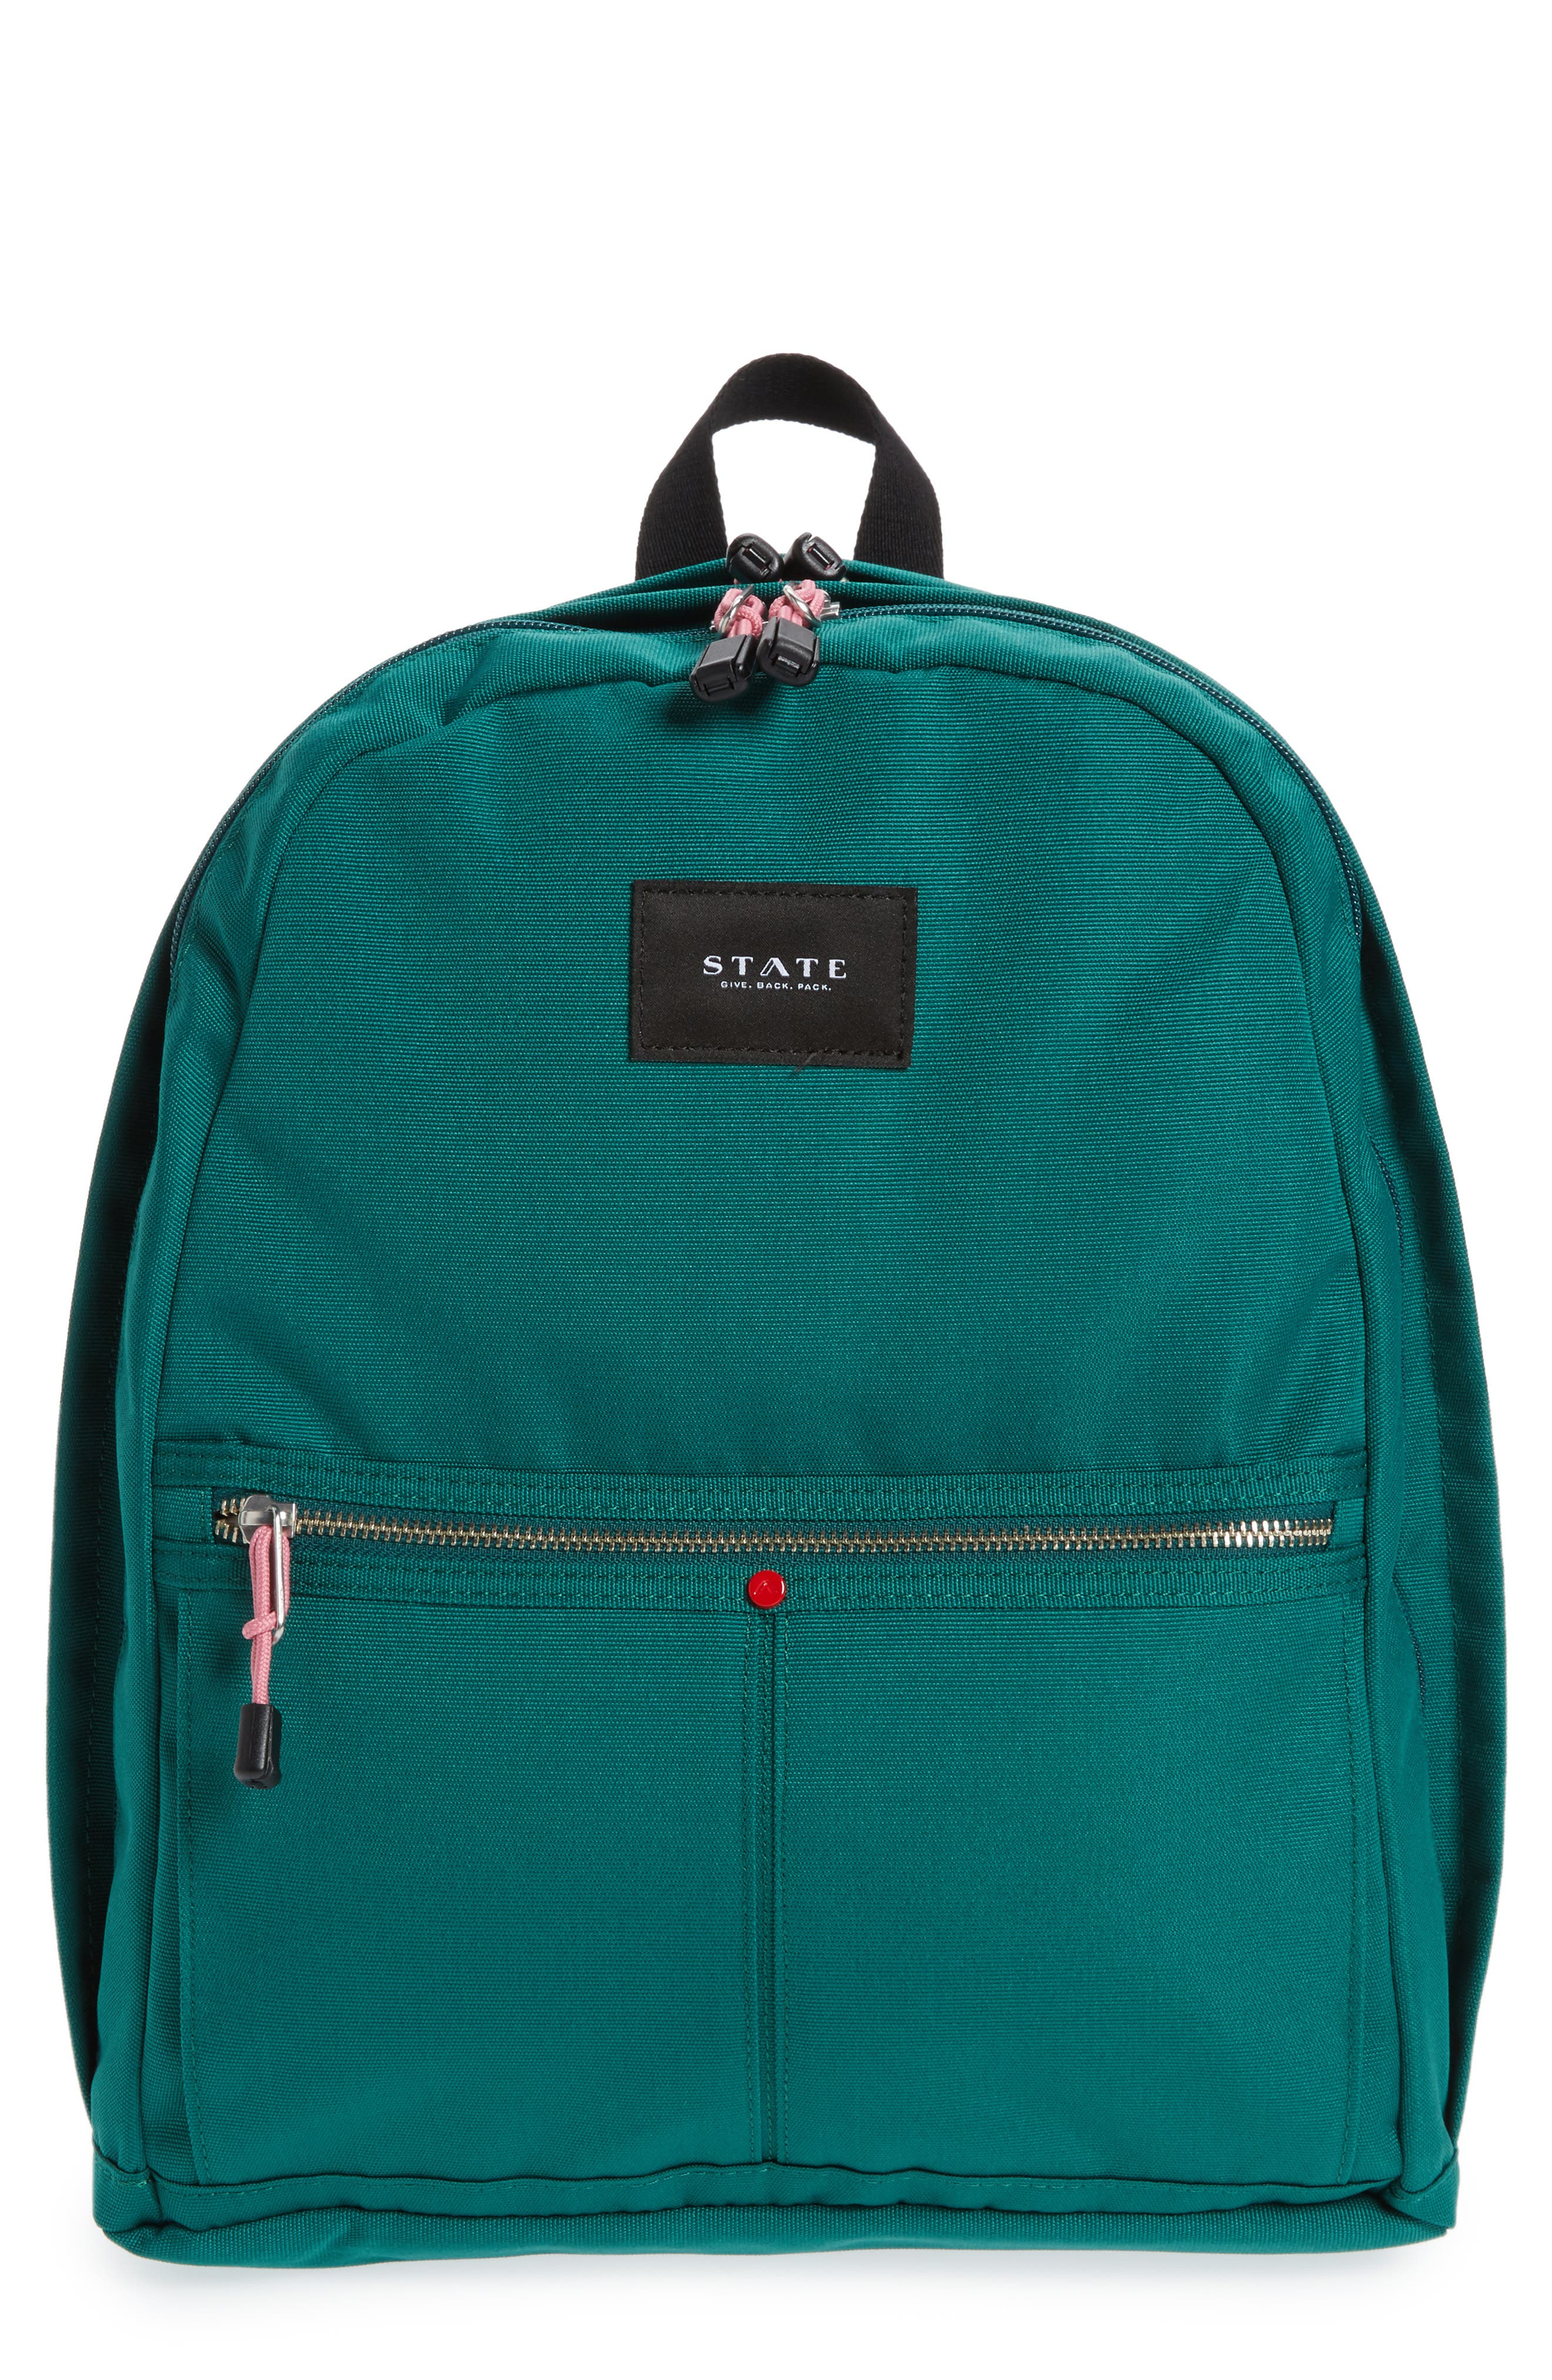 STATE Bags Williamsburg Kent Backpack